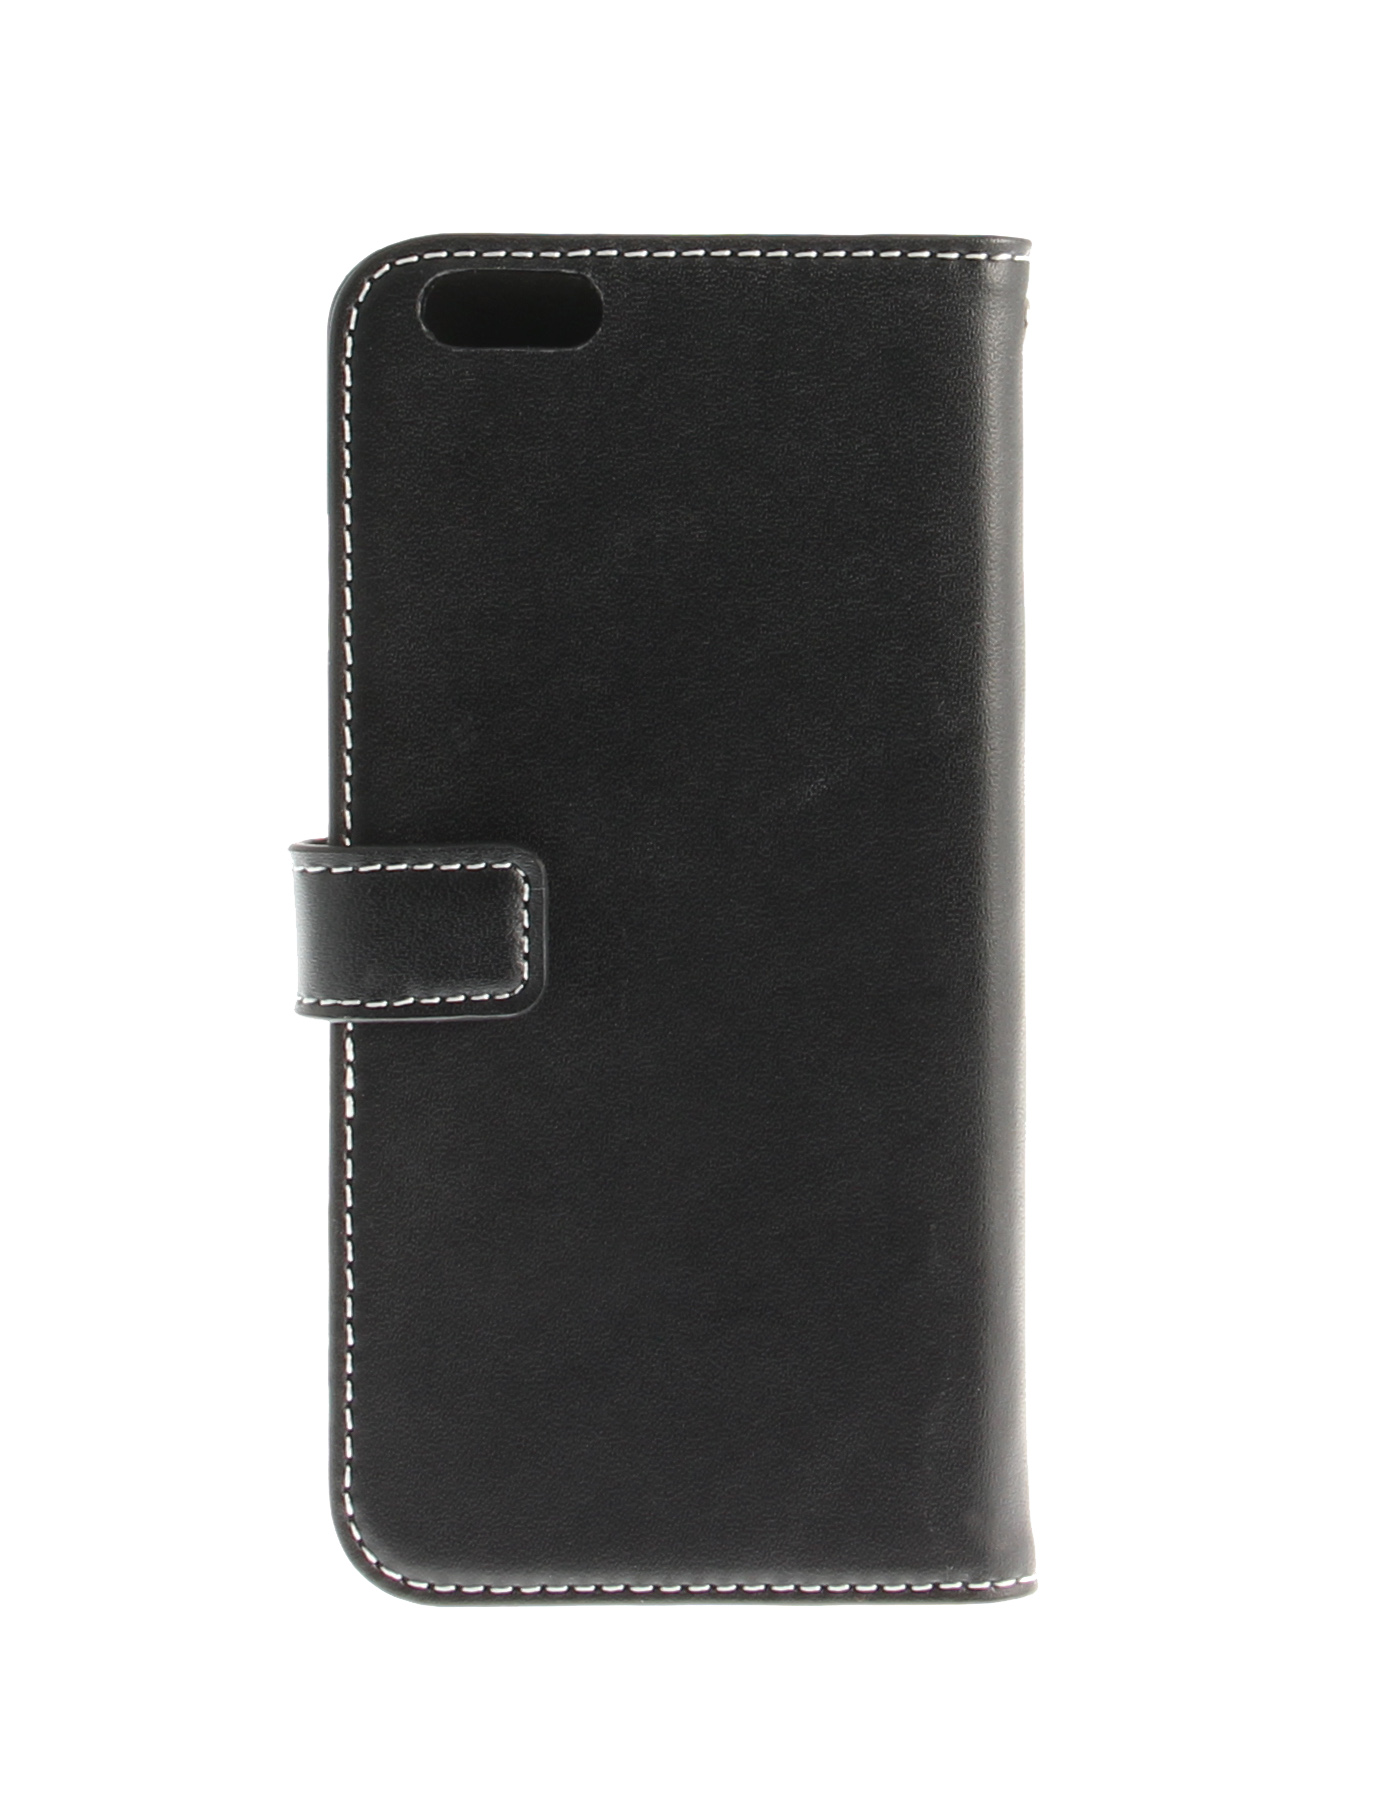 cheap for discount 50d0d 491e6 Exclusive Flip Case for Apple iPhone 6 , Black - iPhone tuotteet ...